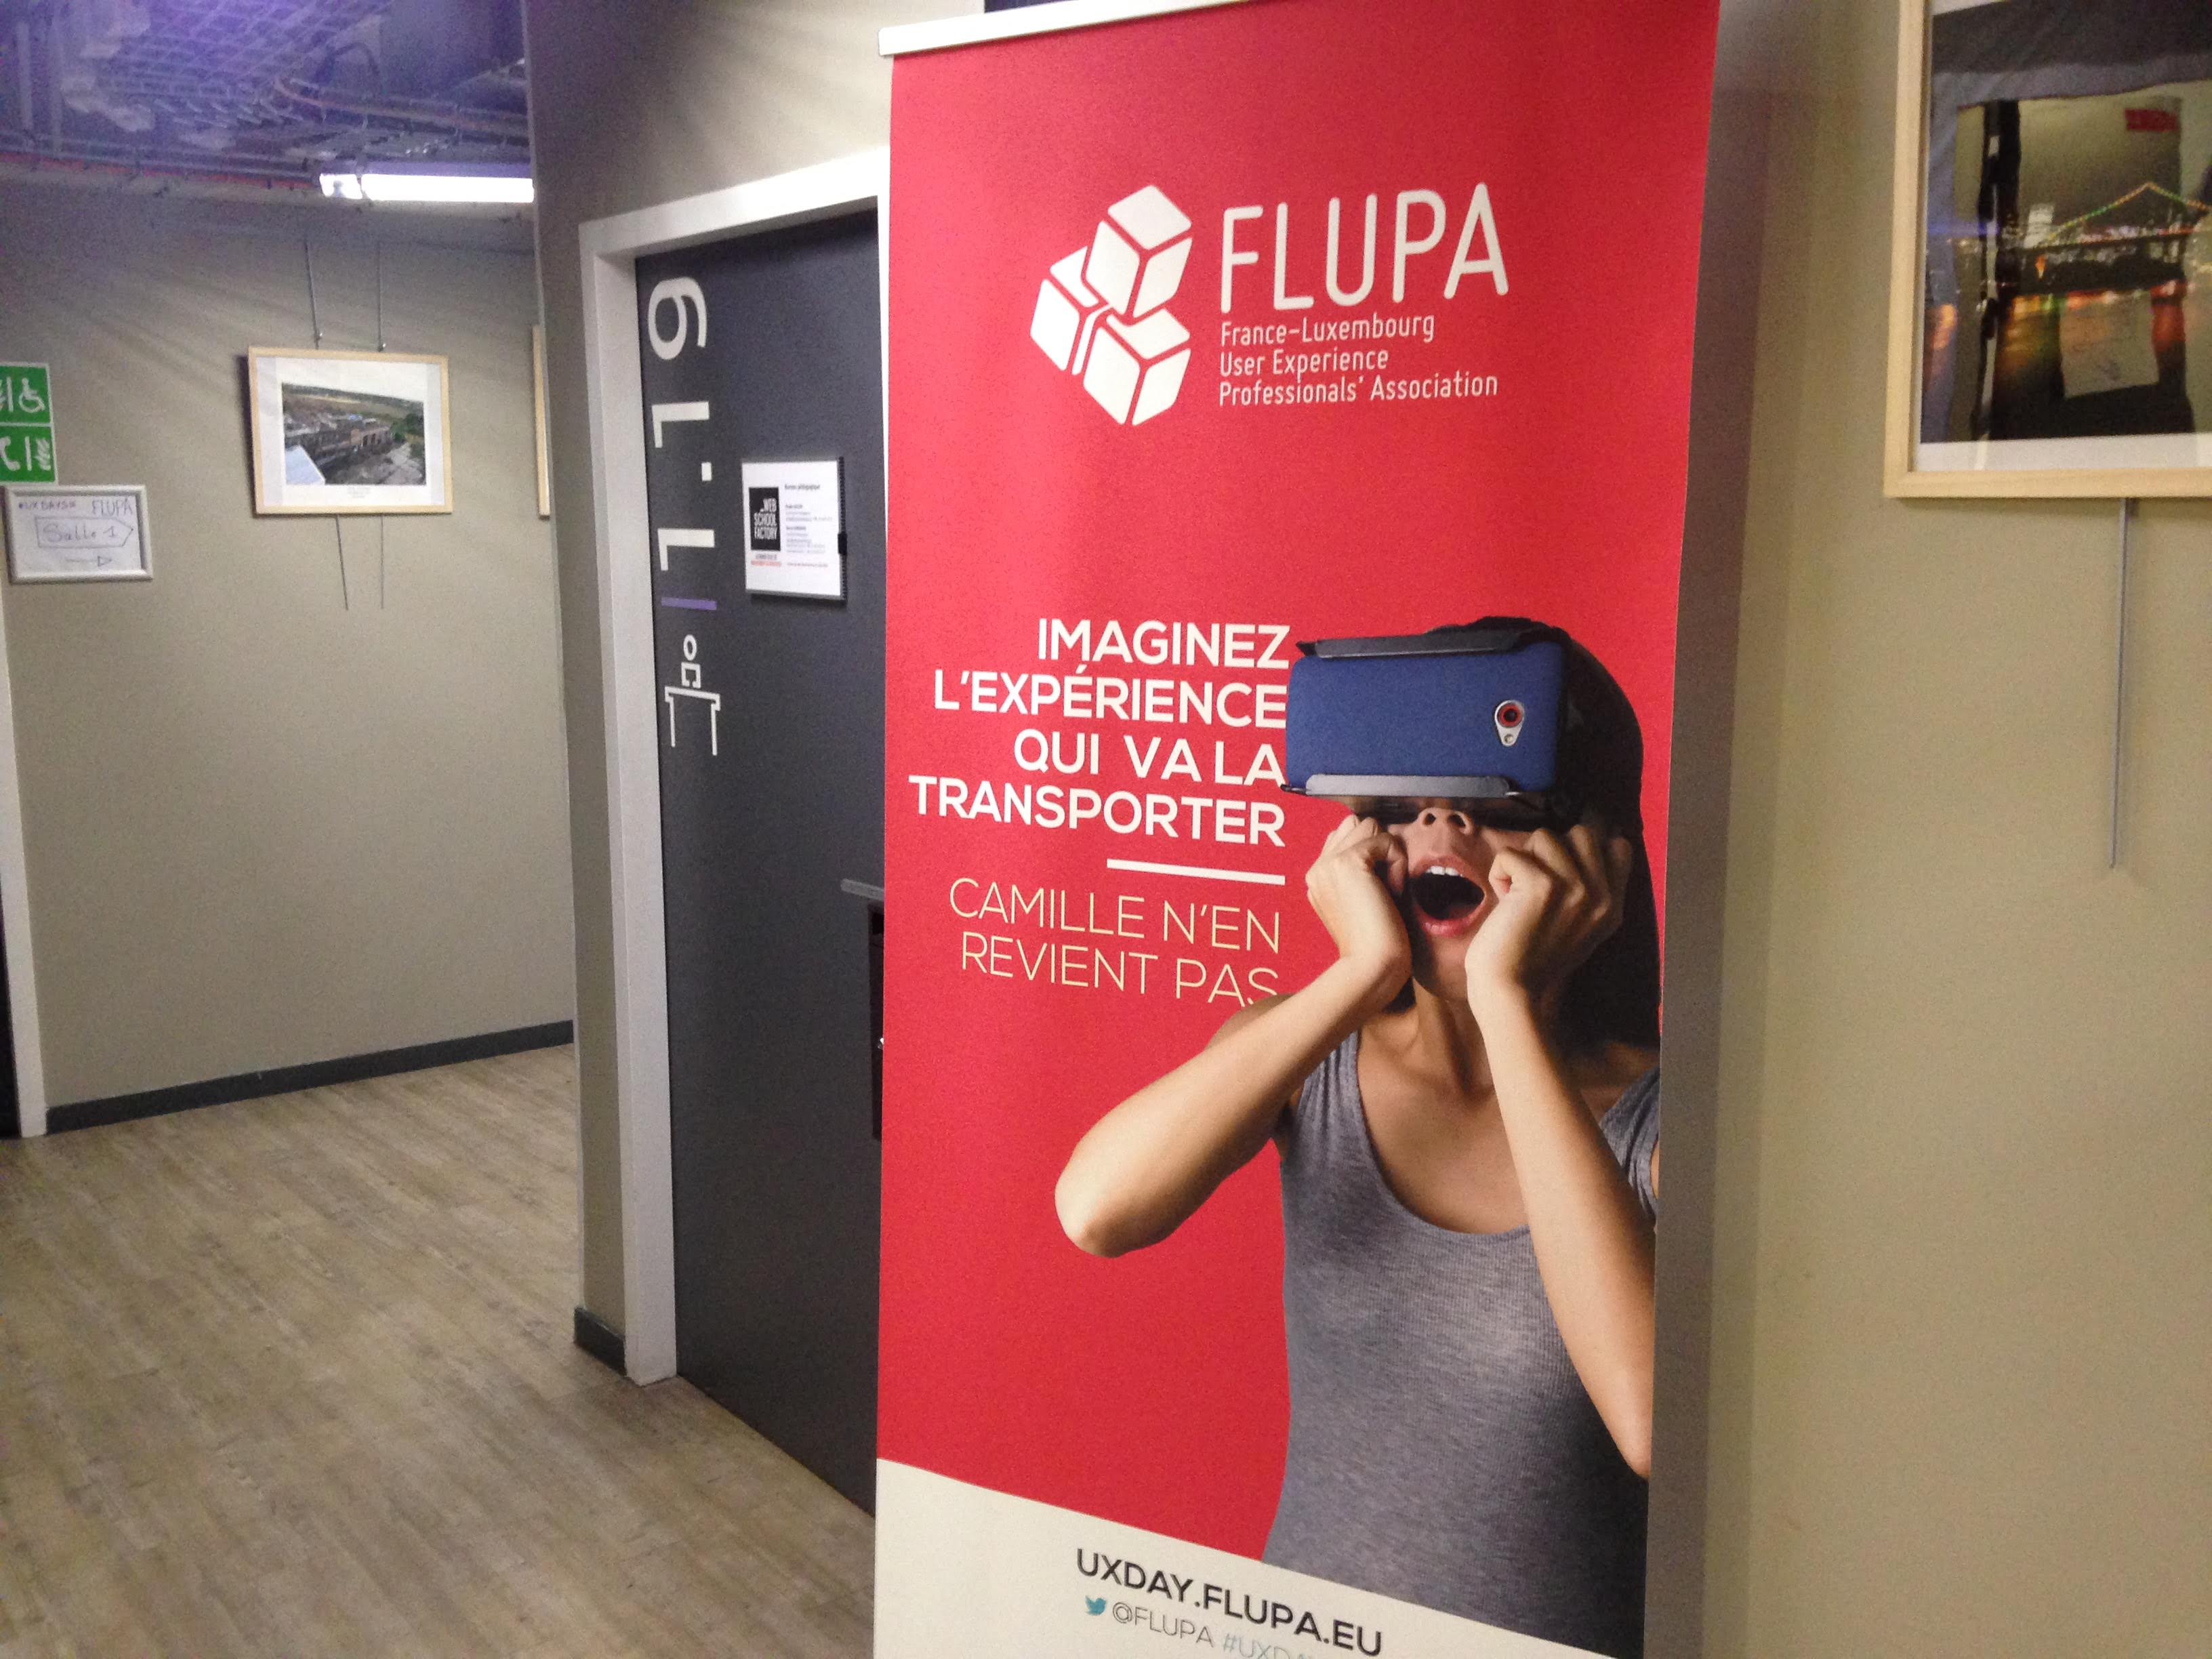 Rollup Flupa UX Days 2016